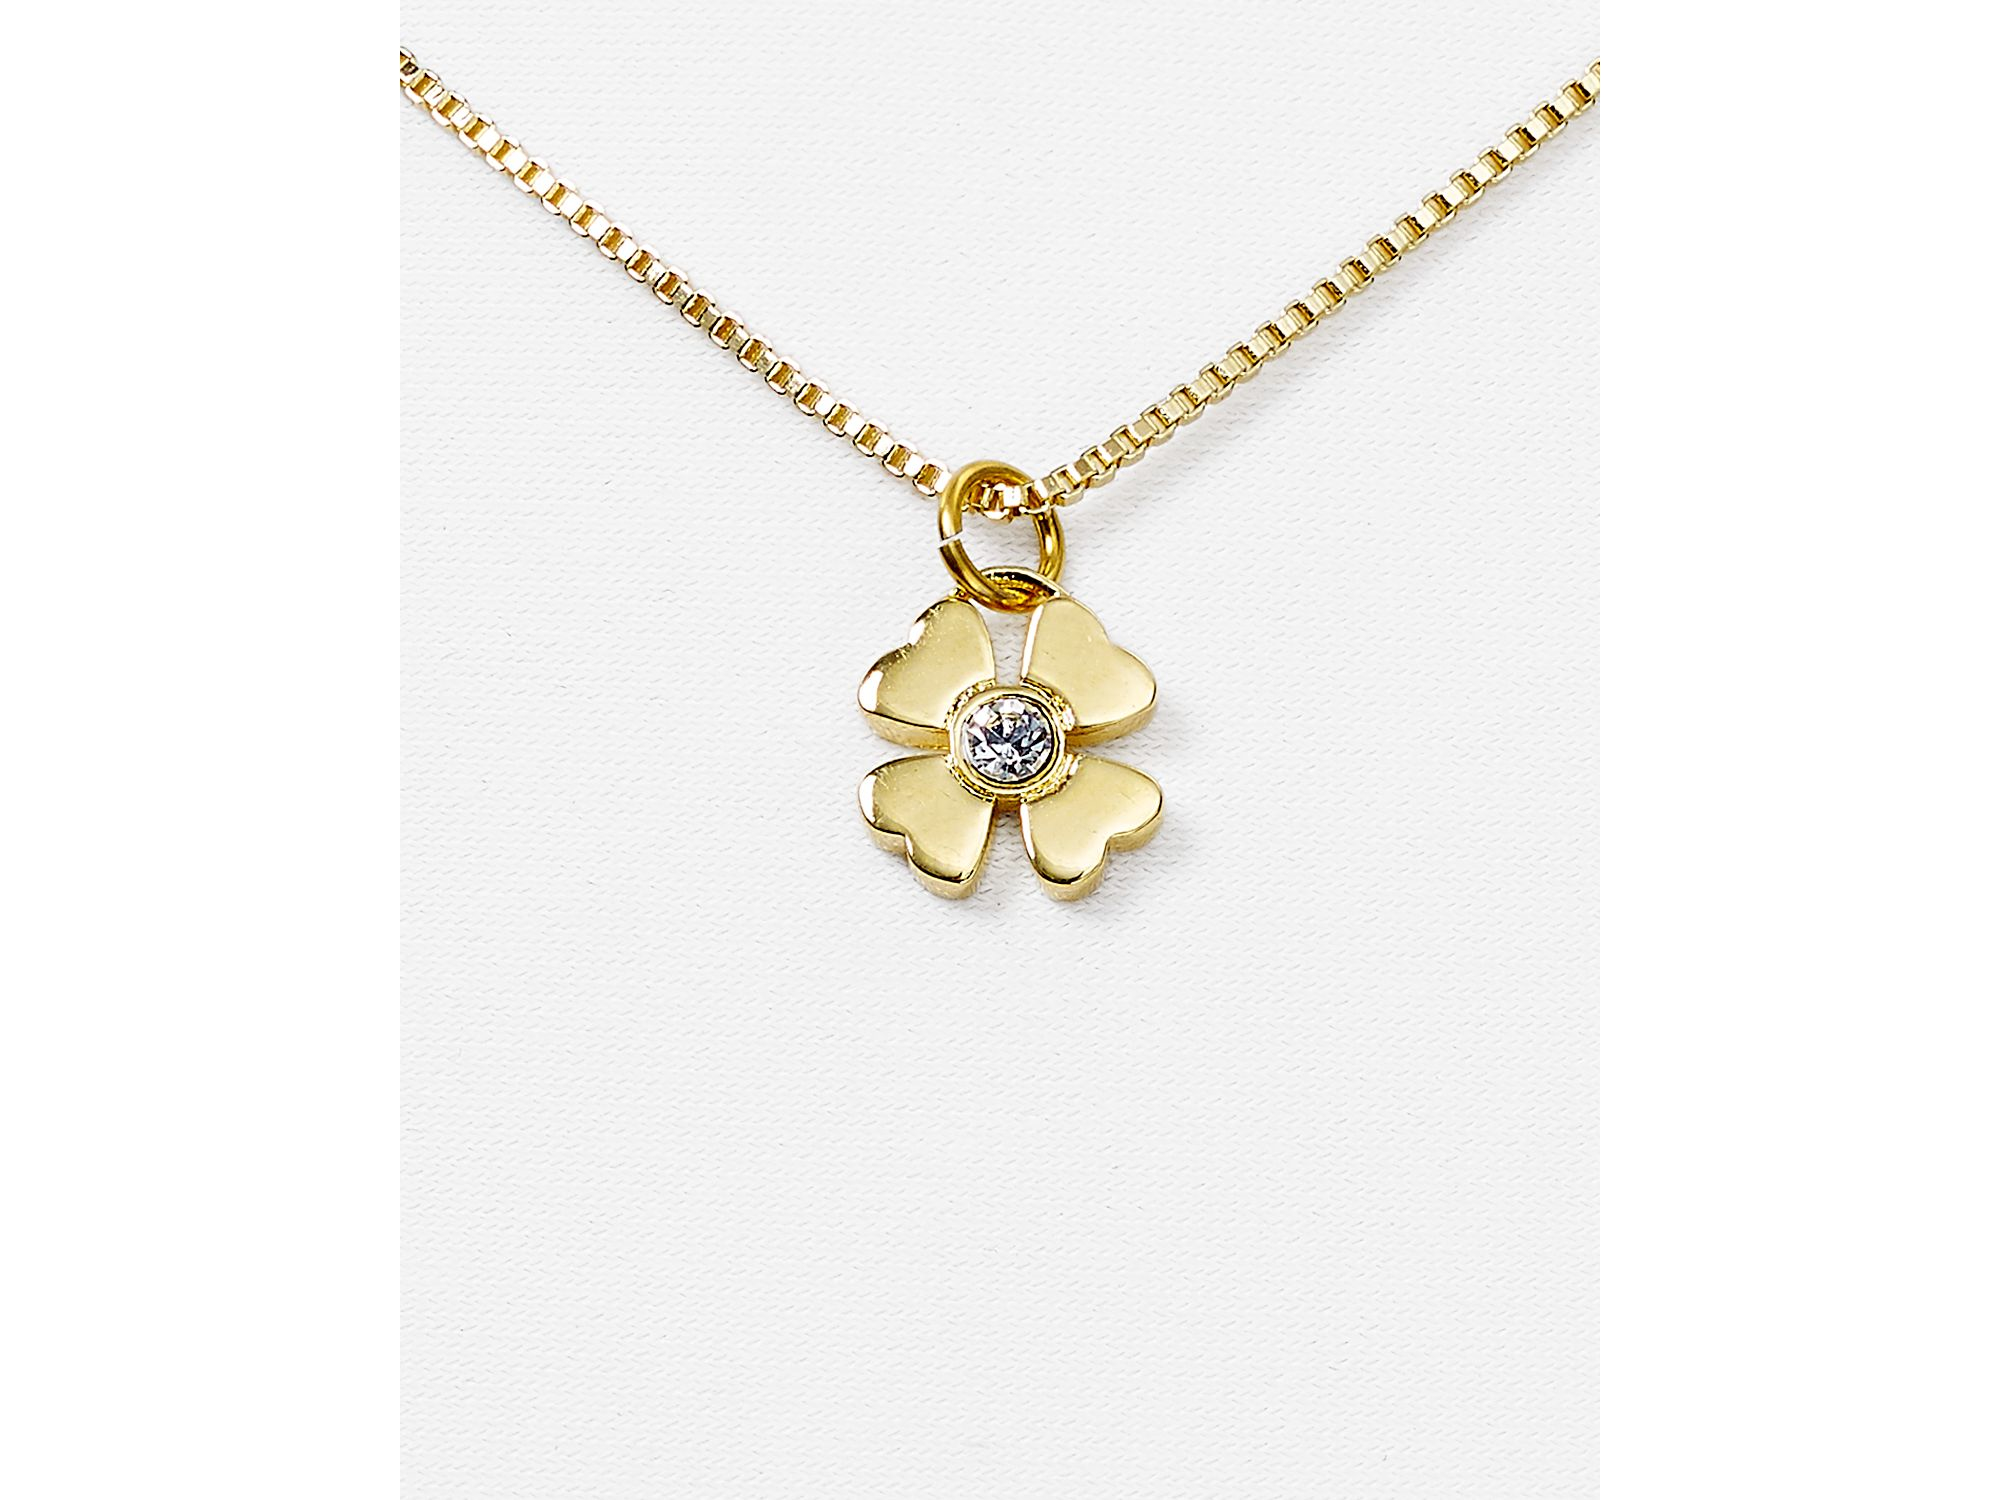 leaf il good sterling clover four for luck silver shamrock her lucky charm personalized necklace listing fullxfull gift jewelry